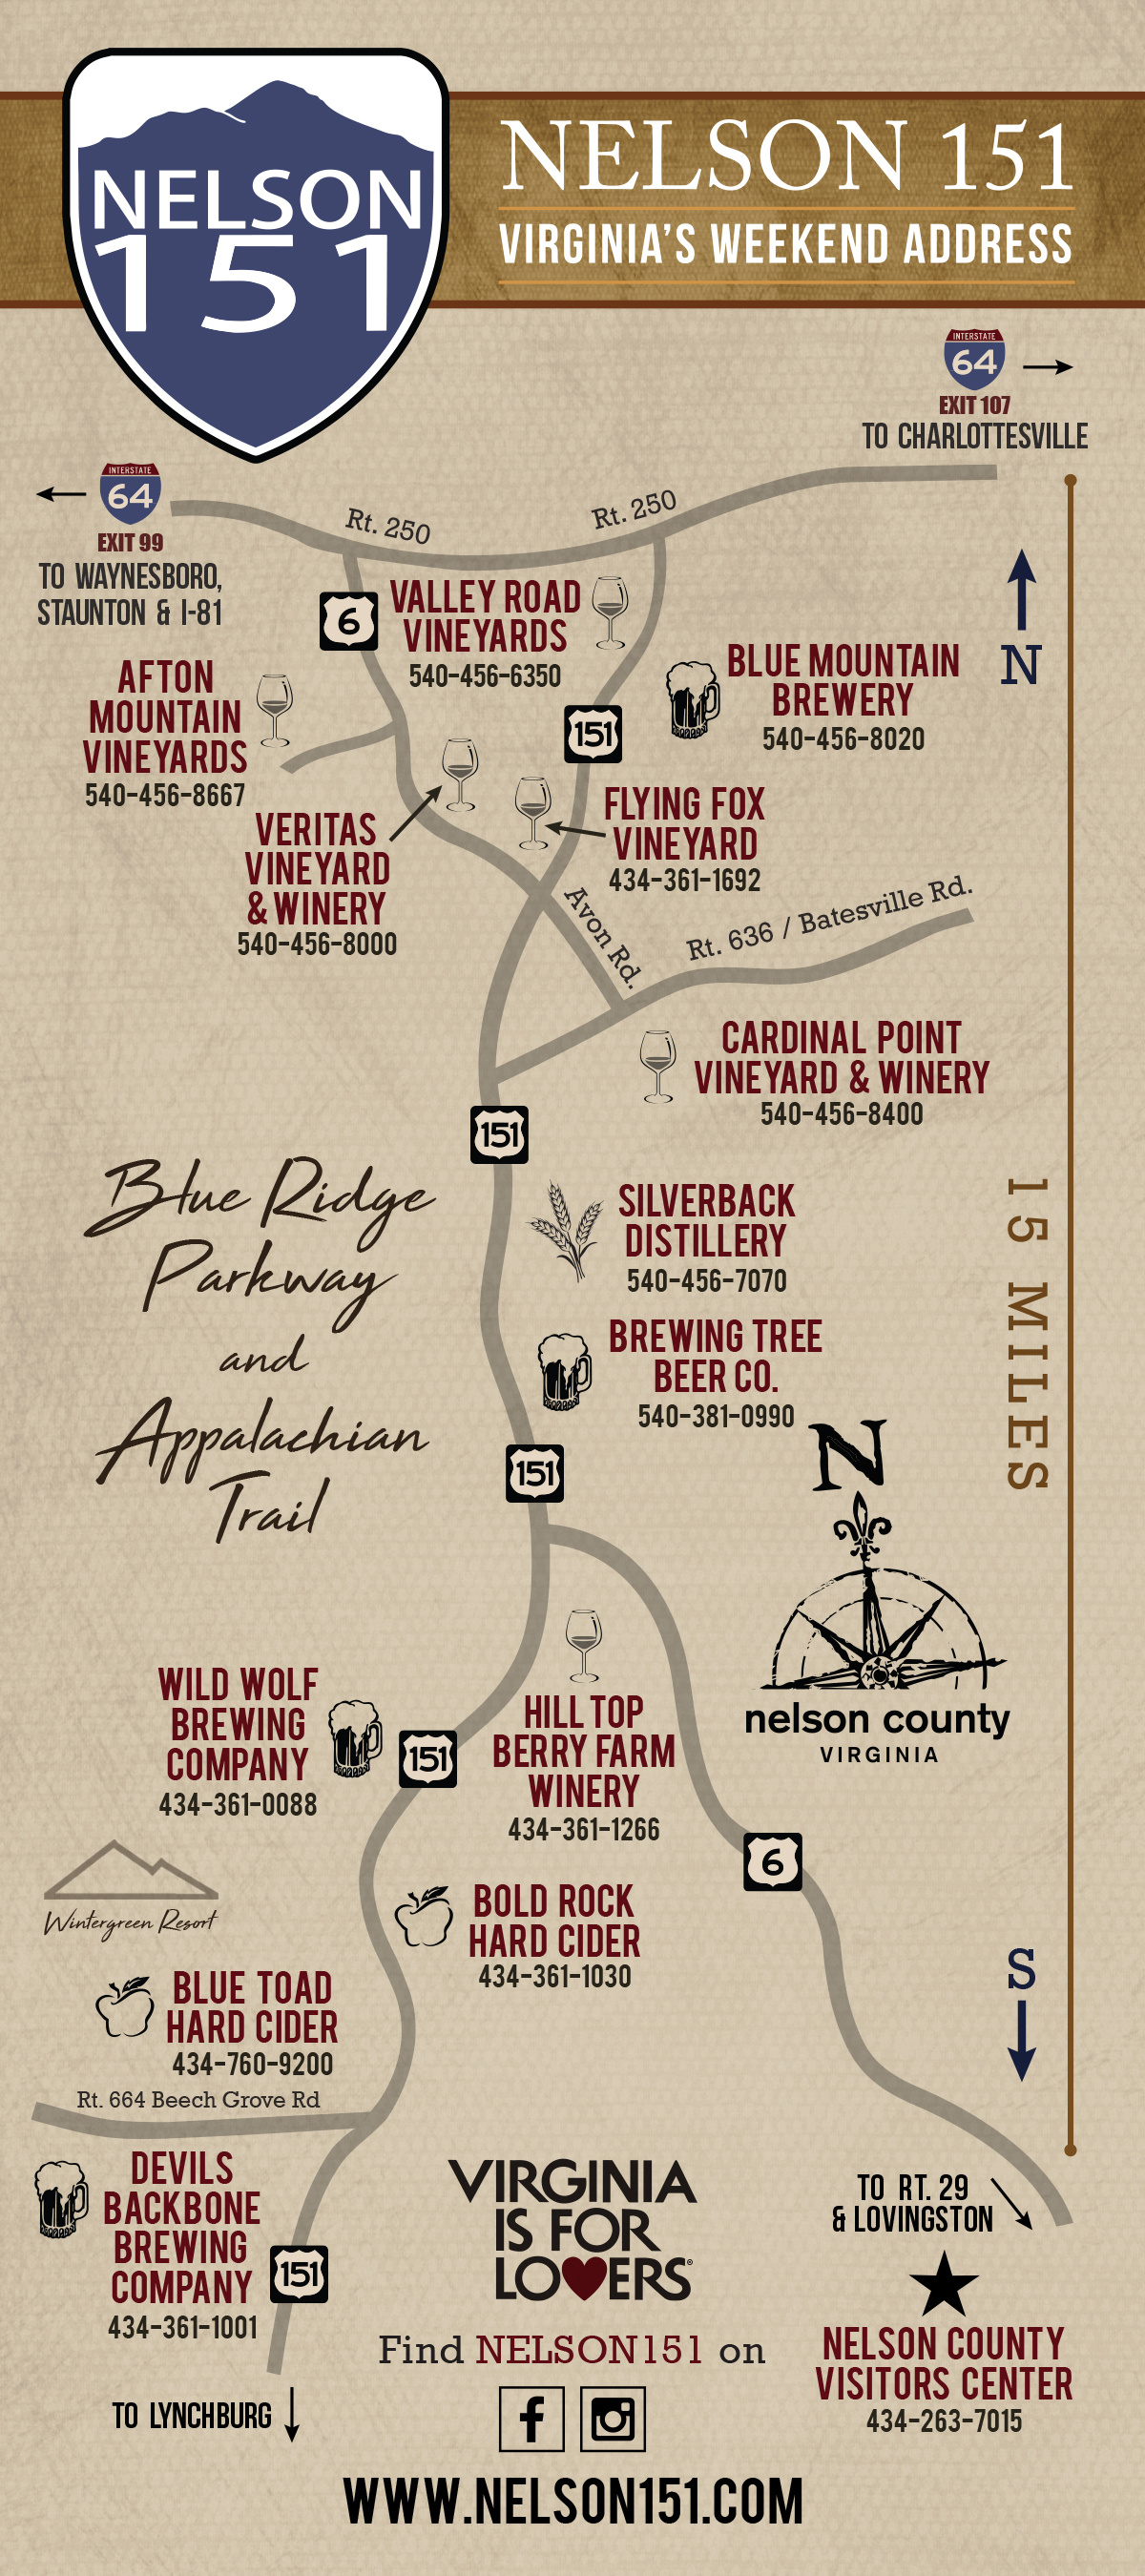 Route 151 is the primary route to Wintergreen and the destination for Virginia wine, craft beer and hard cider lovers.      Check out their events